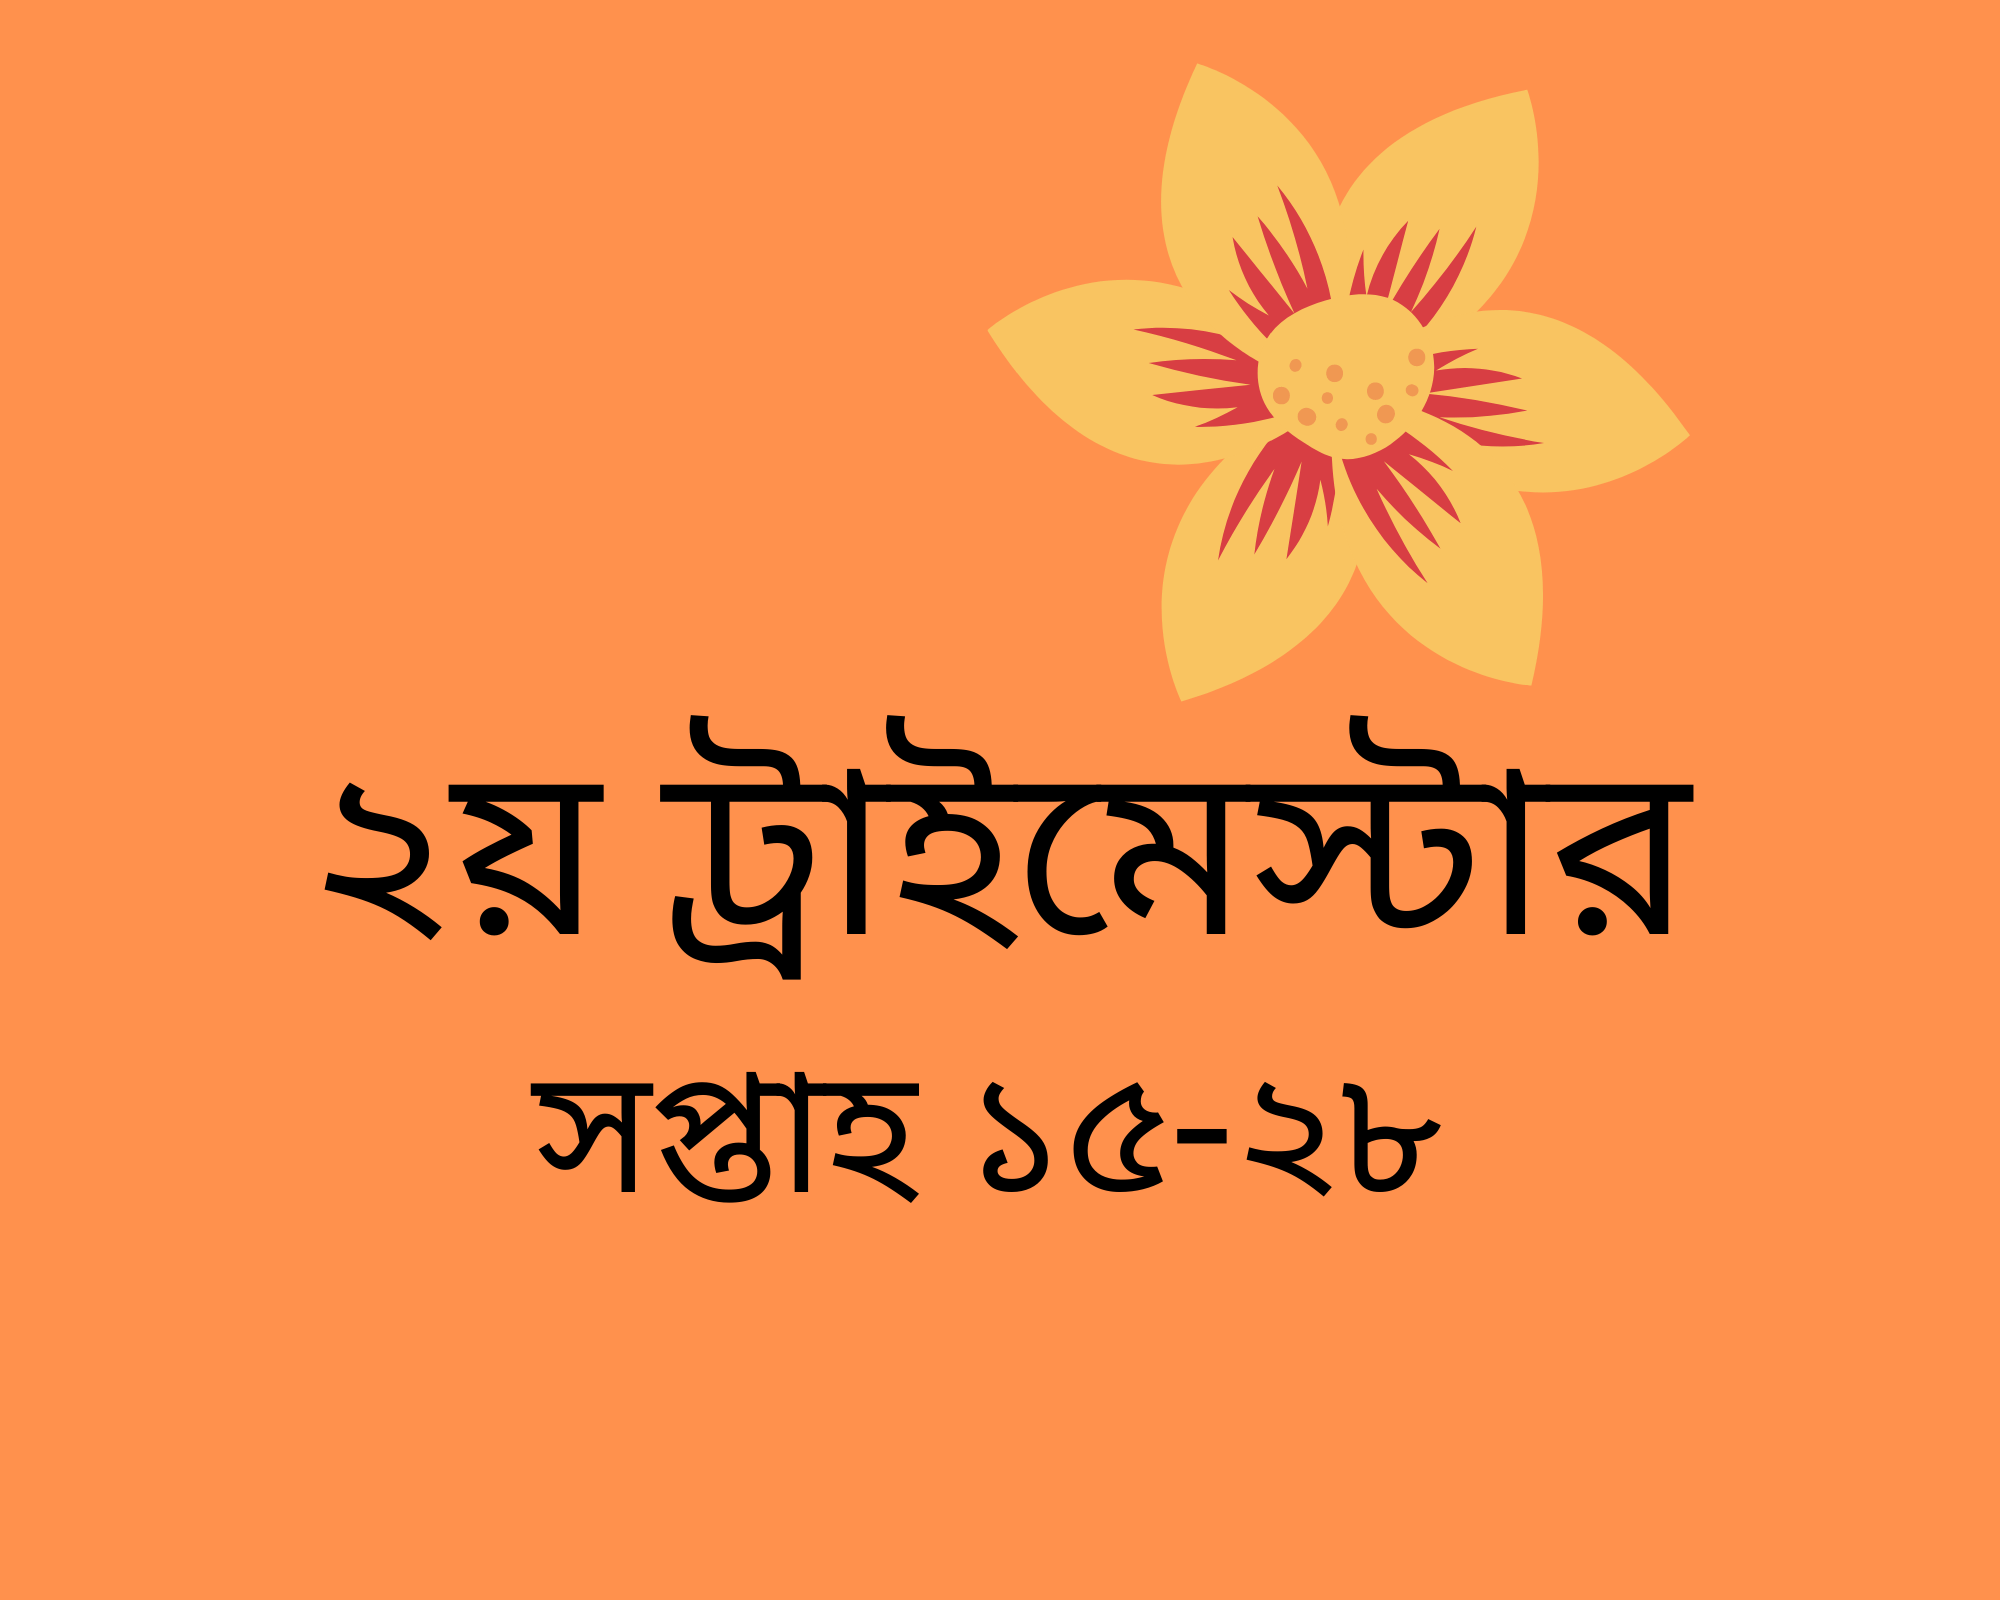 Click here for Trimester 2 wellbeing tips in Bengali